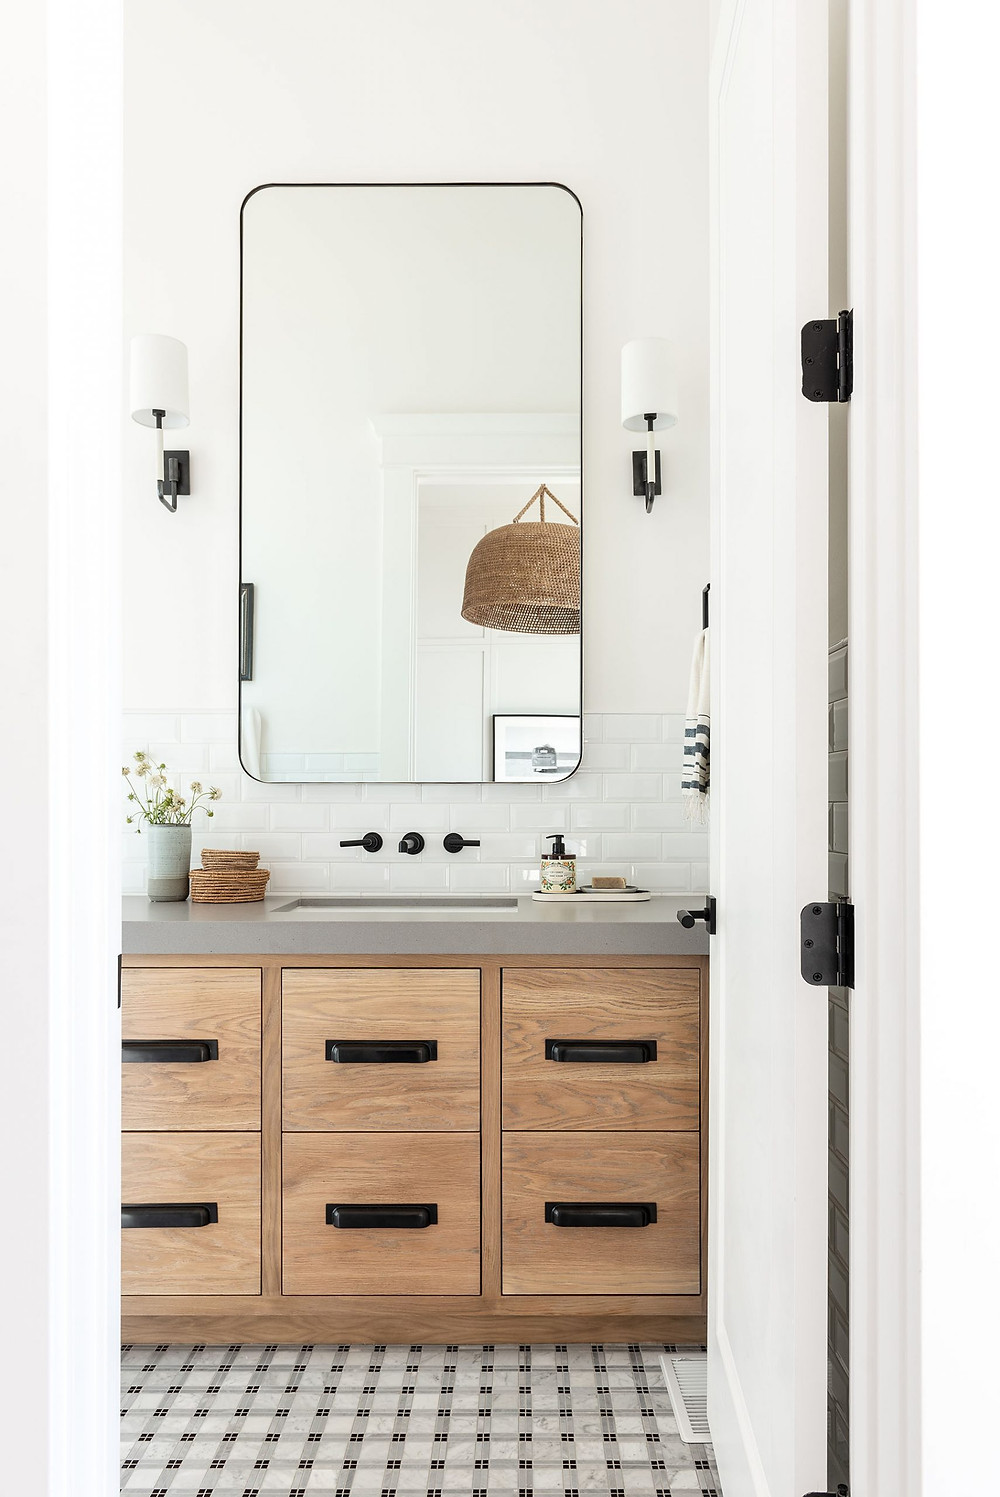 wood bathroom vanity with 6 drawers black handles two sconces flanking large black framed mirror white subway backsplash concrete grey countertop and marble mosaic floor tile